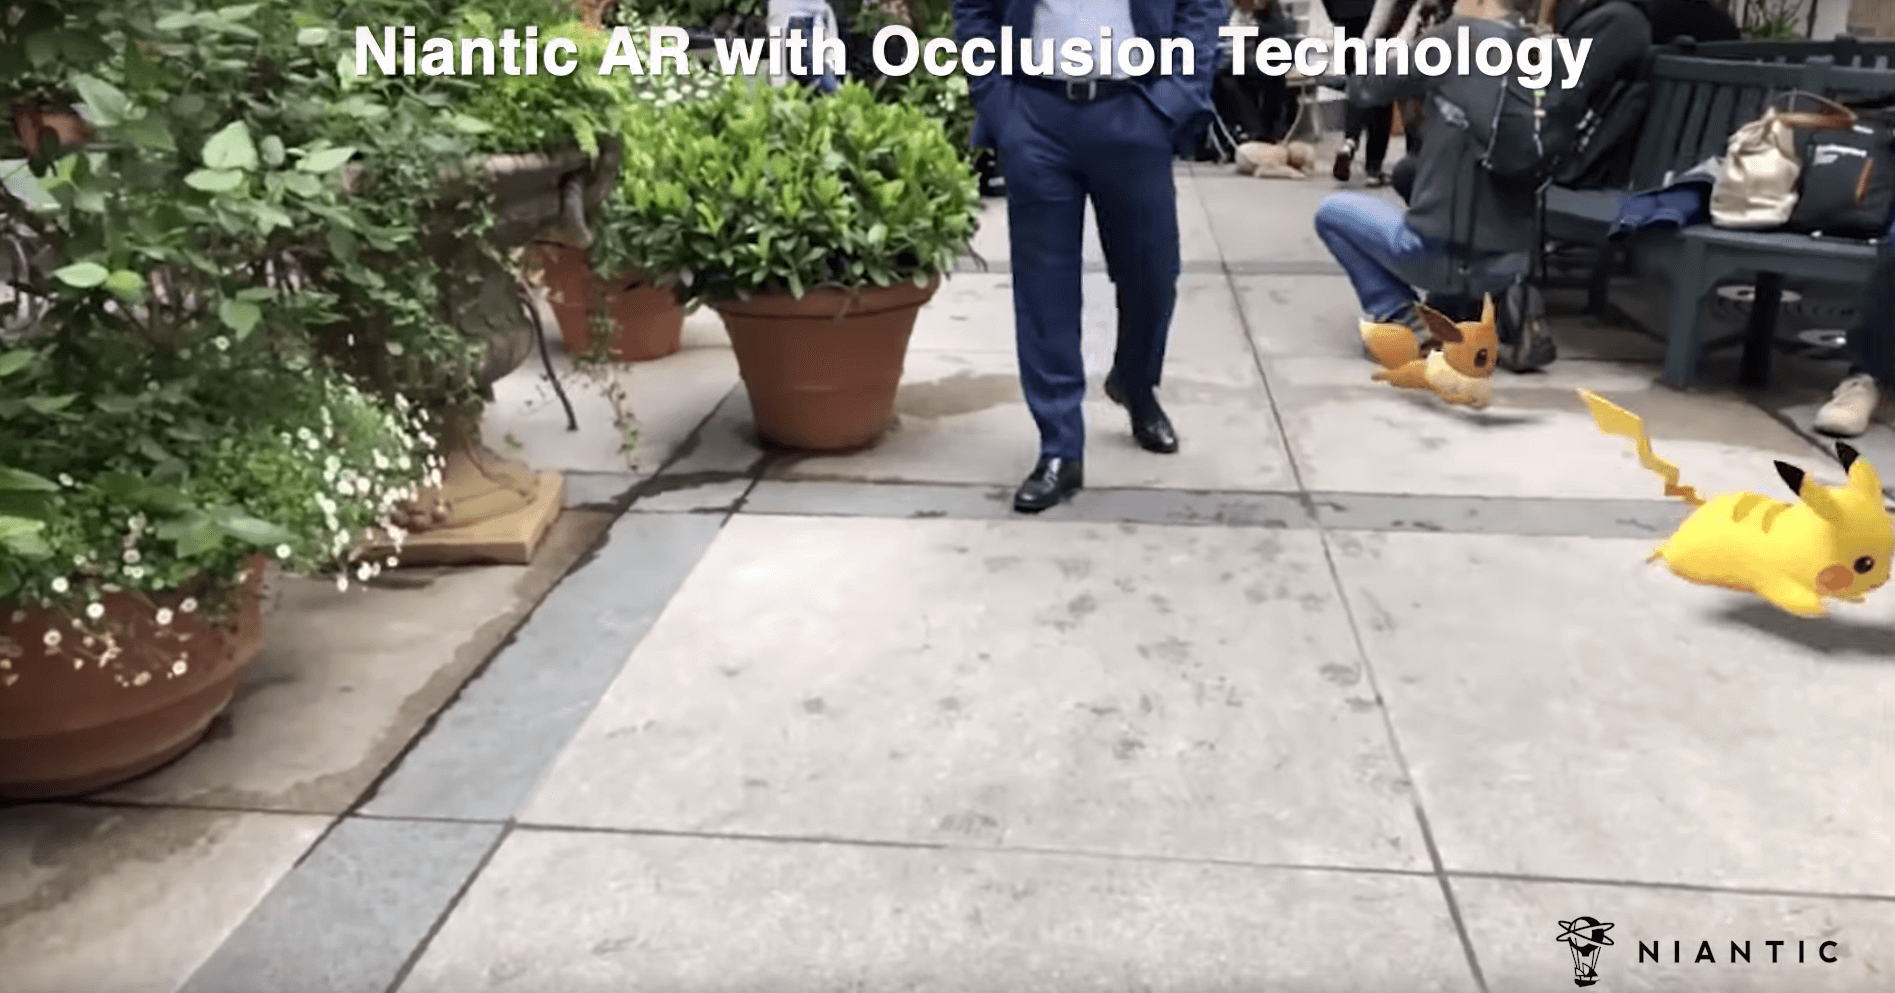 Niantic AR with occlusion technology - nianticlabs.com